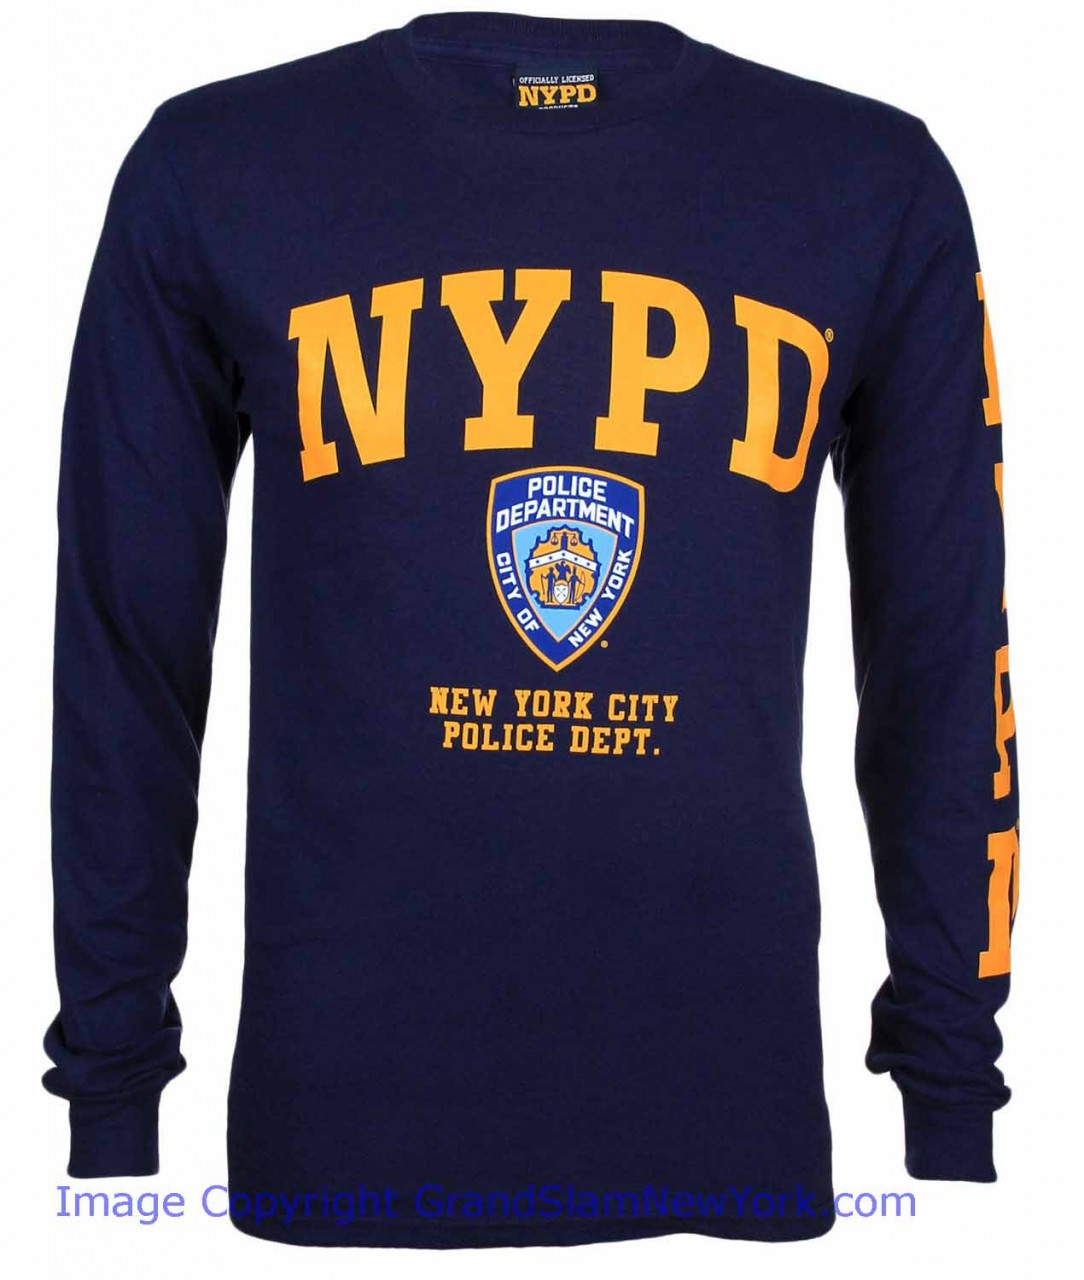 Nypd full chest and sleeve long sleeve t shirt navy for Long beach ny shirts